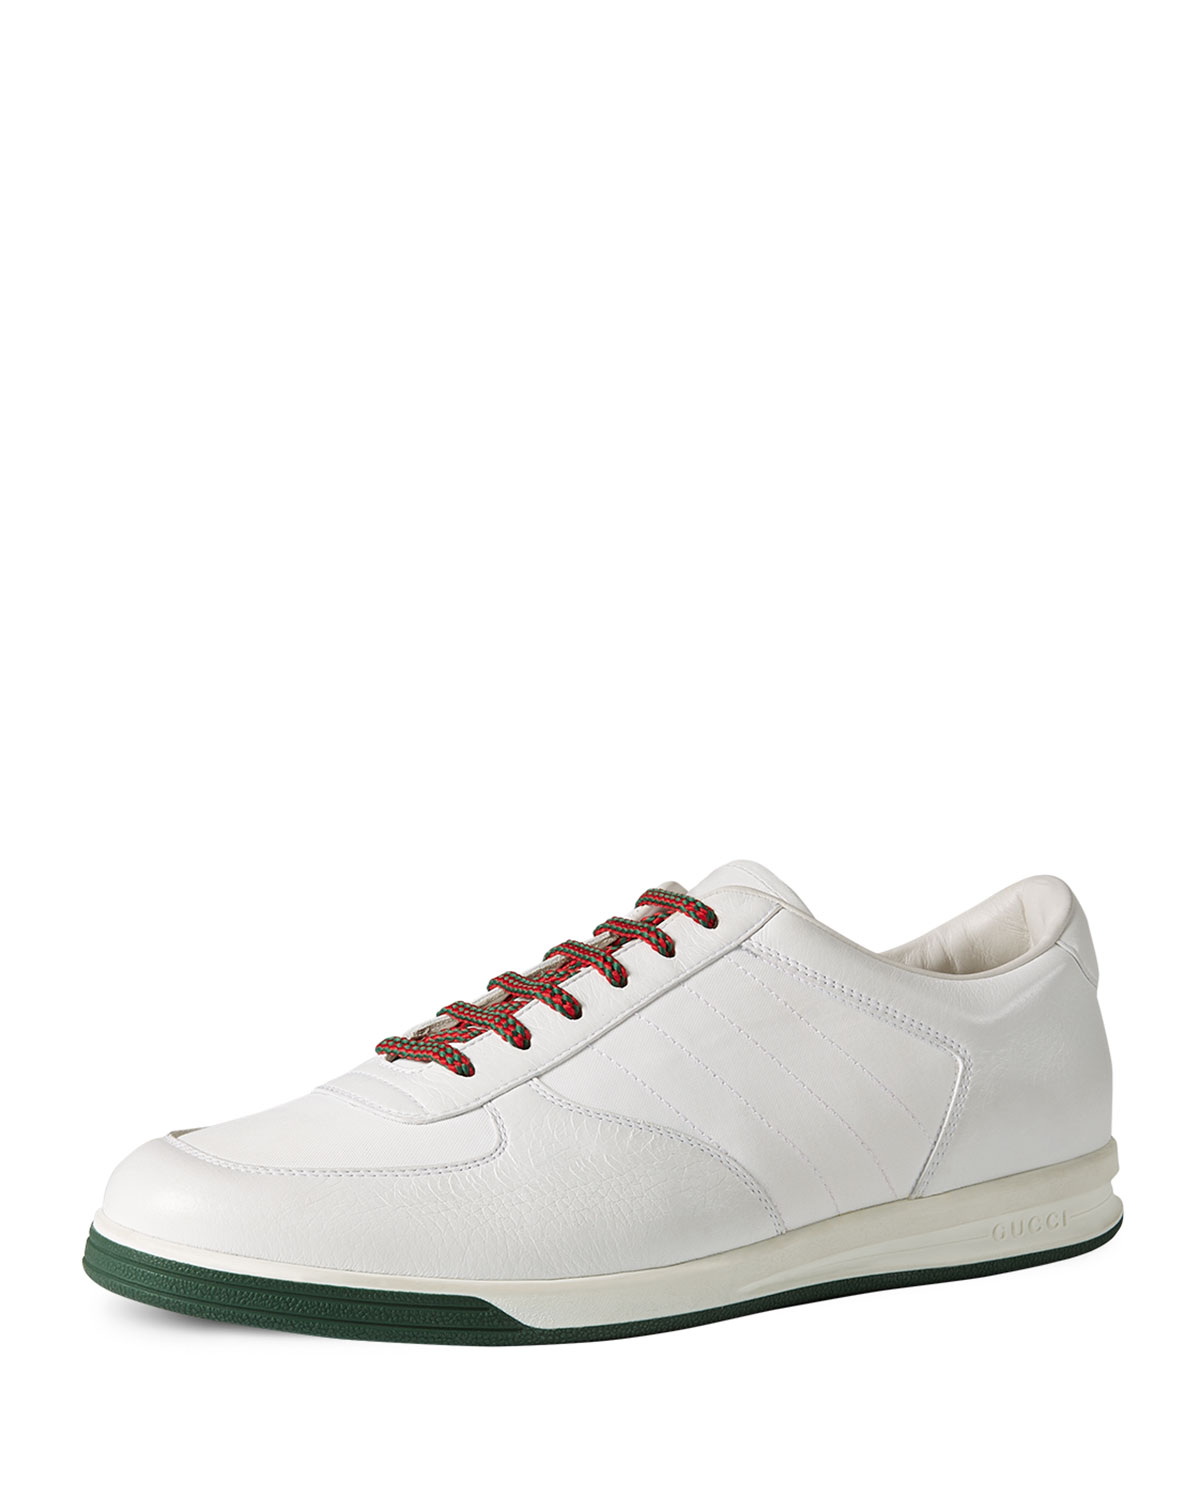 Gucci 1984 Leather Low-Top Sneaker